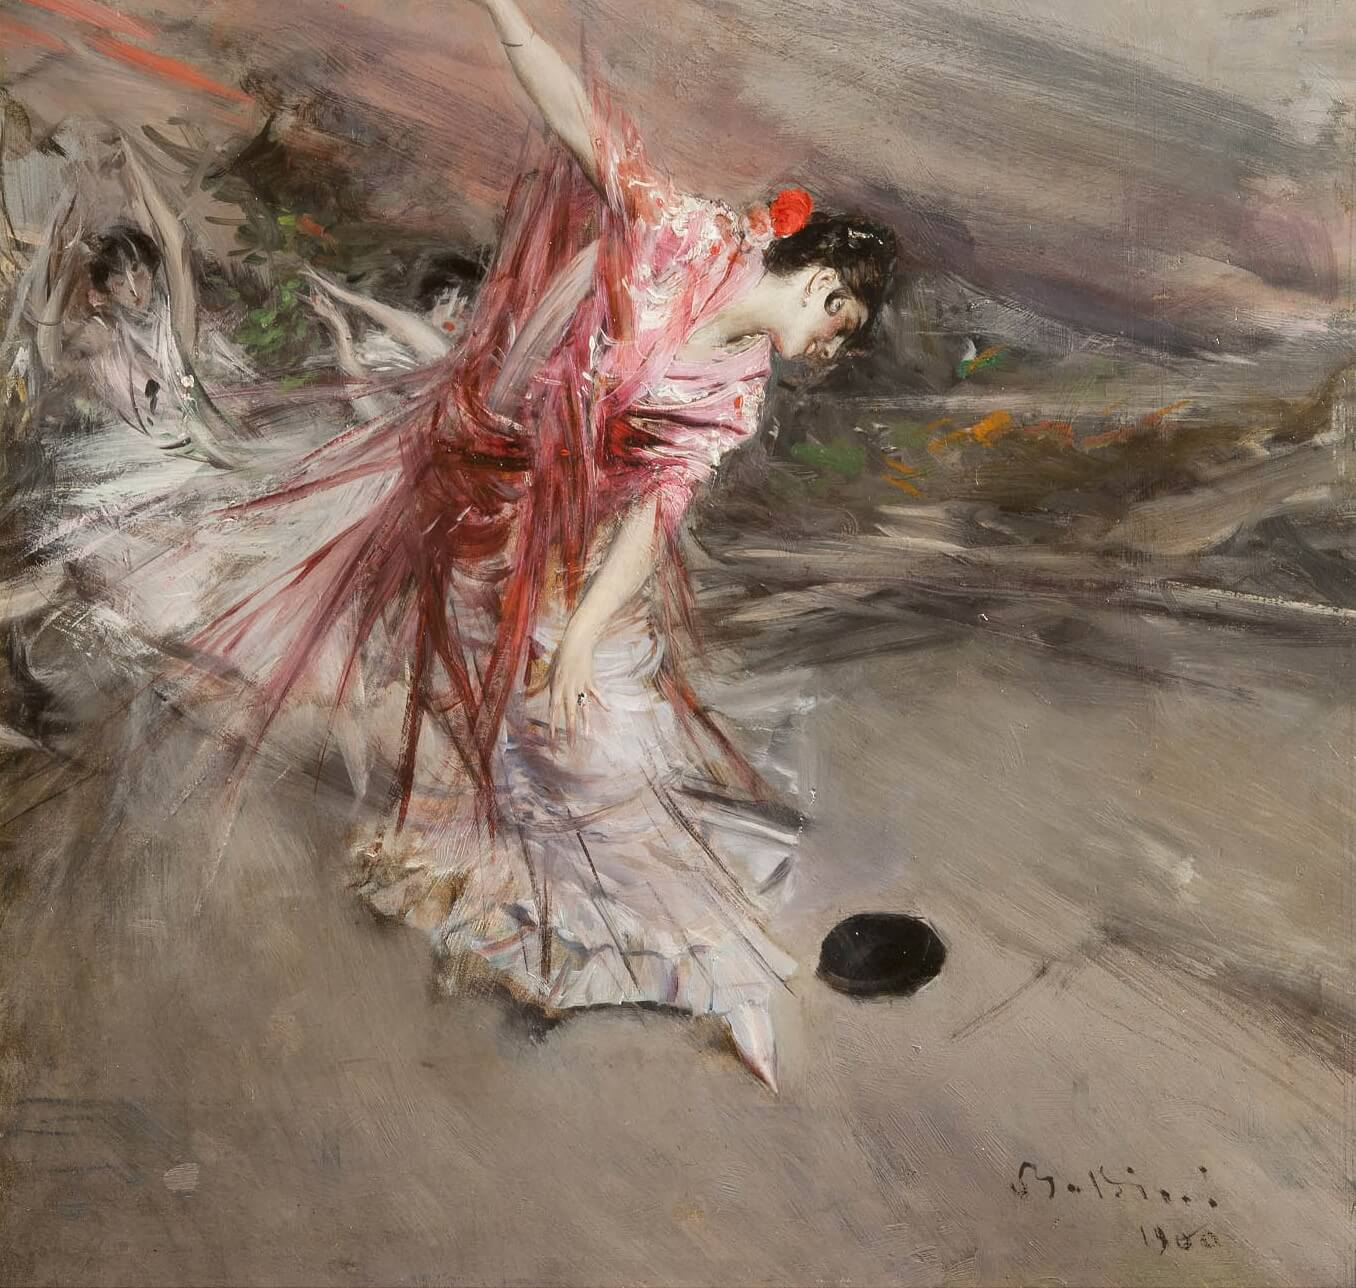 Giovanni Boldini, Spanish dancer, 1900